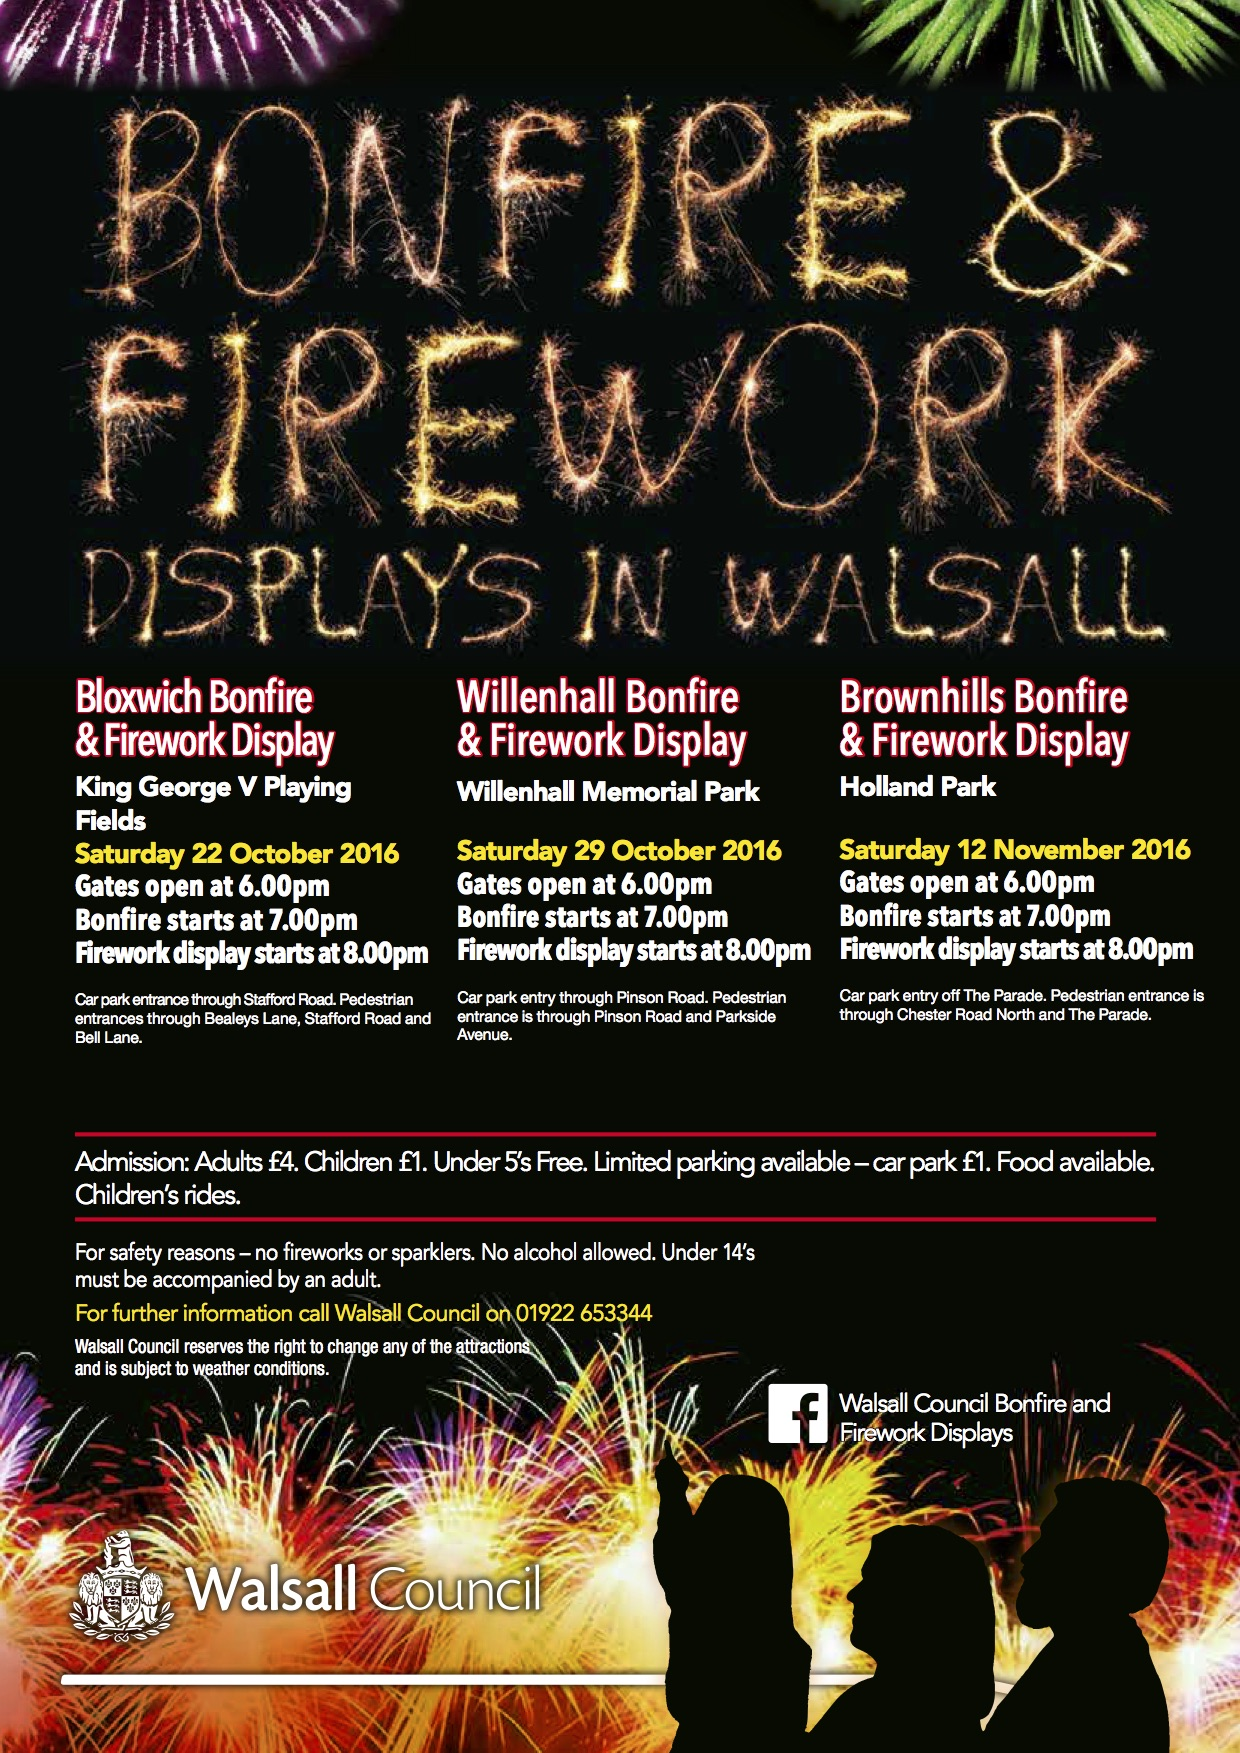 don t forget it s the 2016 brownhills bonfire this saturday